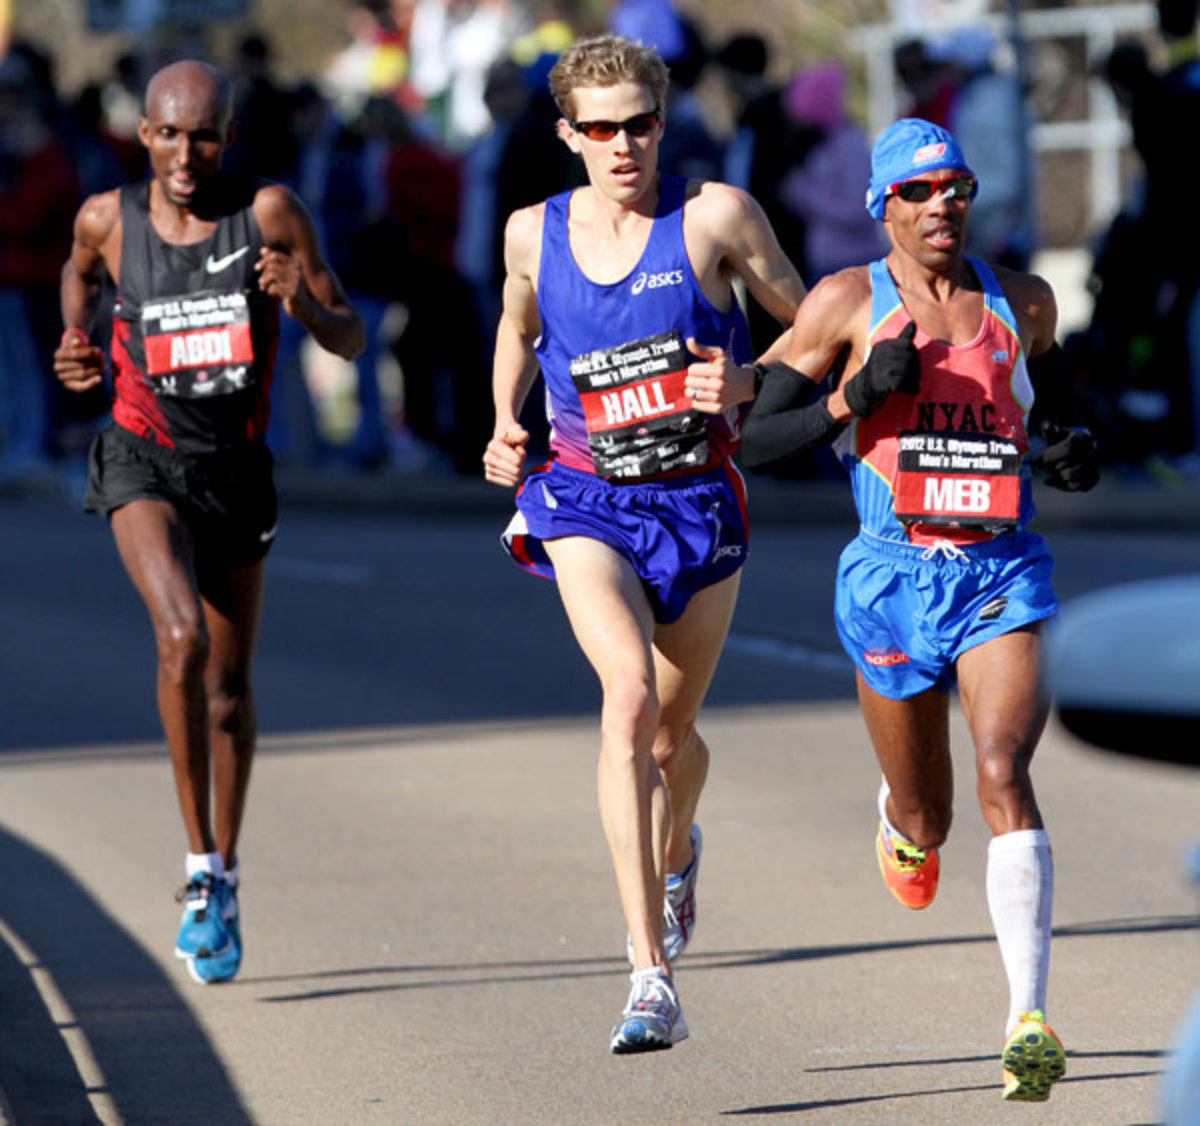 Meb Keflezighi, Ryan Hall and Abdi Abdirahman compete in the U.S. Marathon Olympic Trials in January 2012 in Houston, Texas.